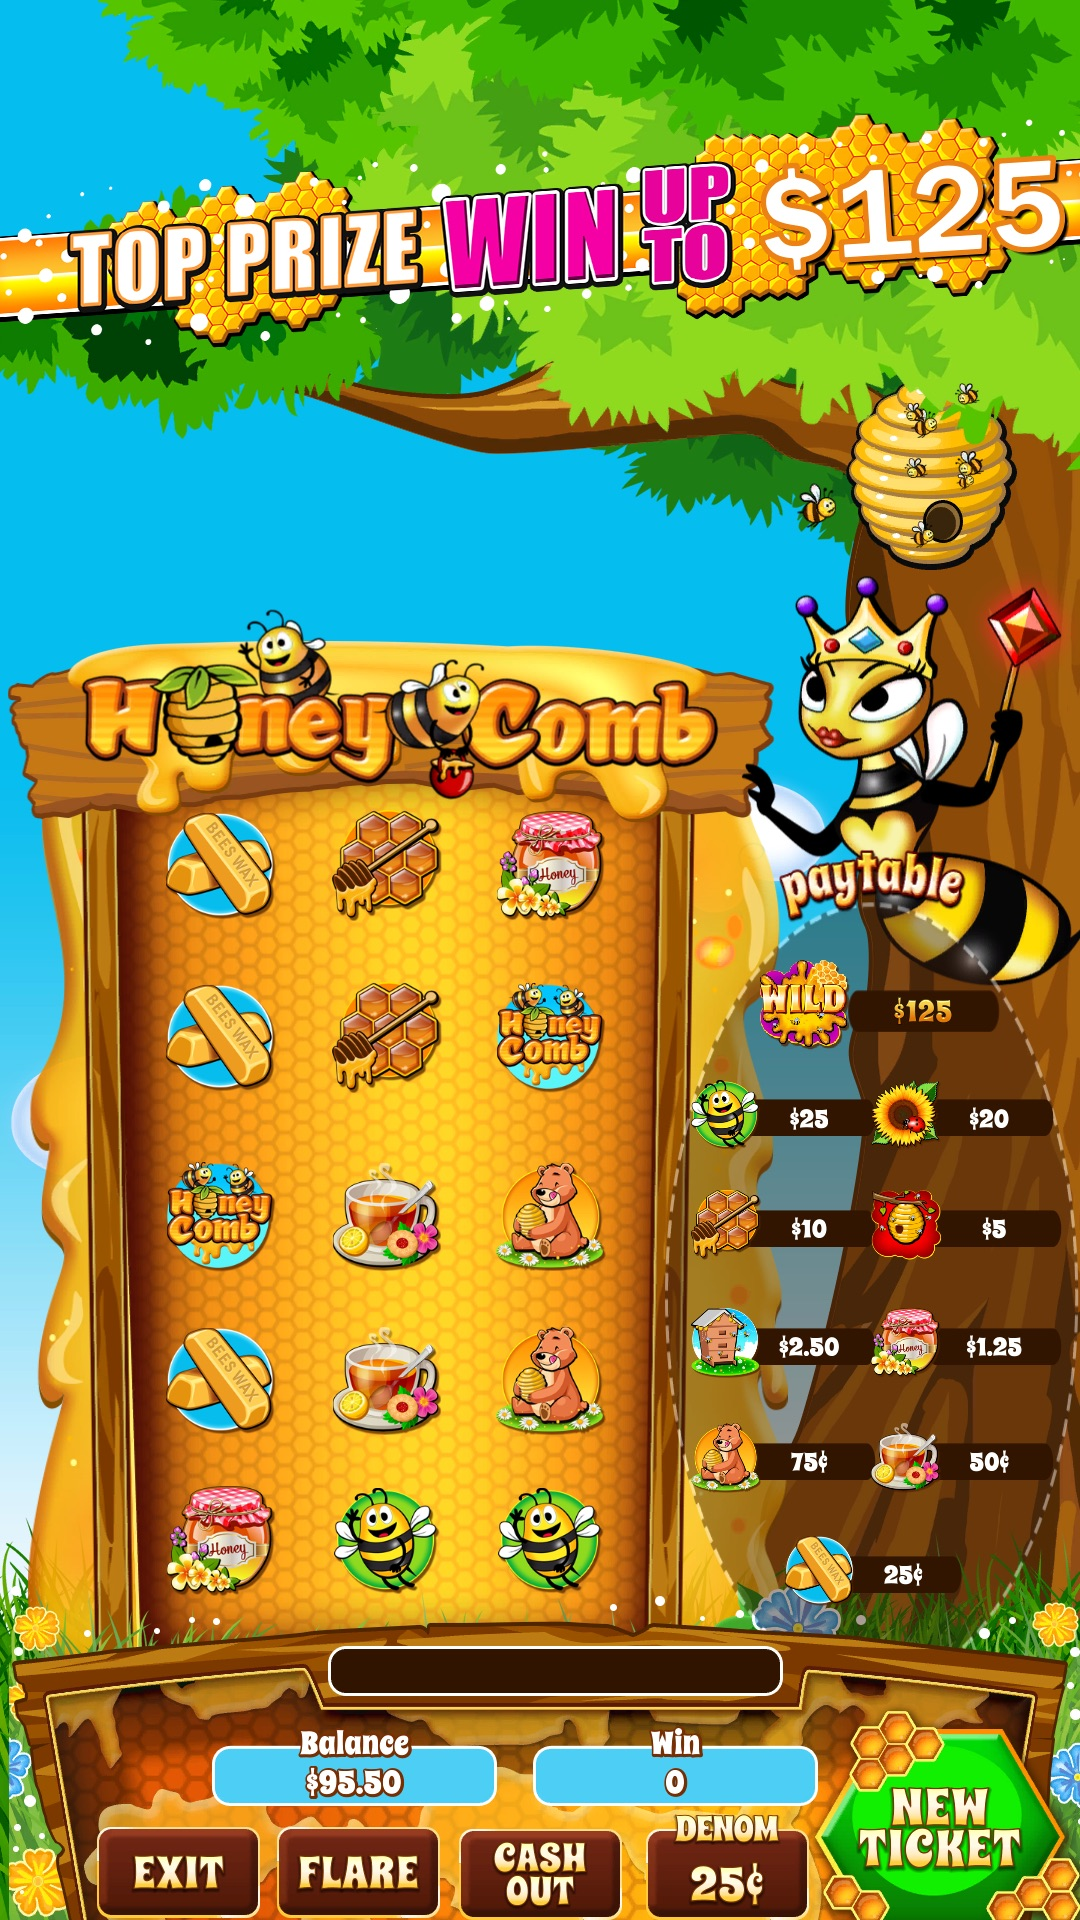 Honeycomb-pull-tab-game-screen-shot-Hero